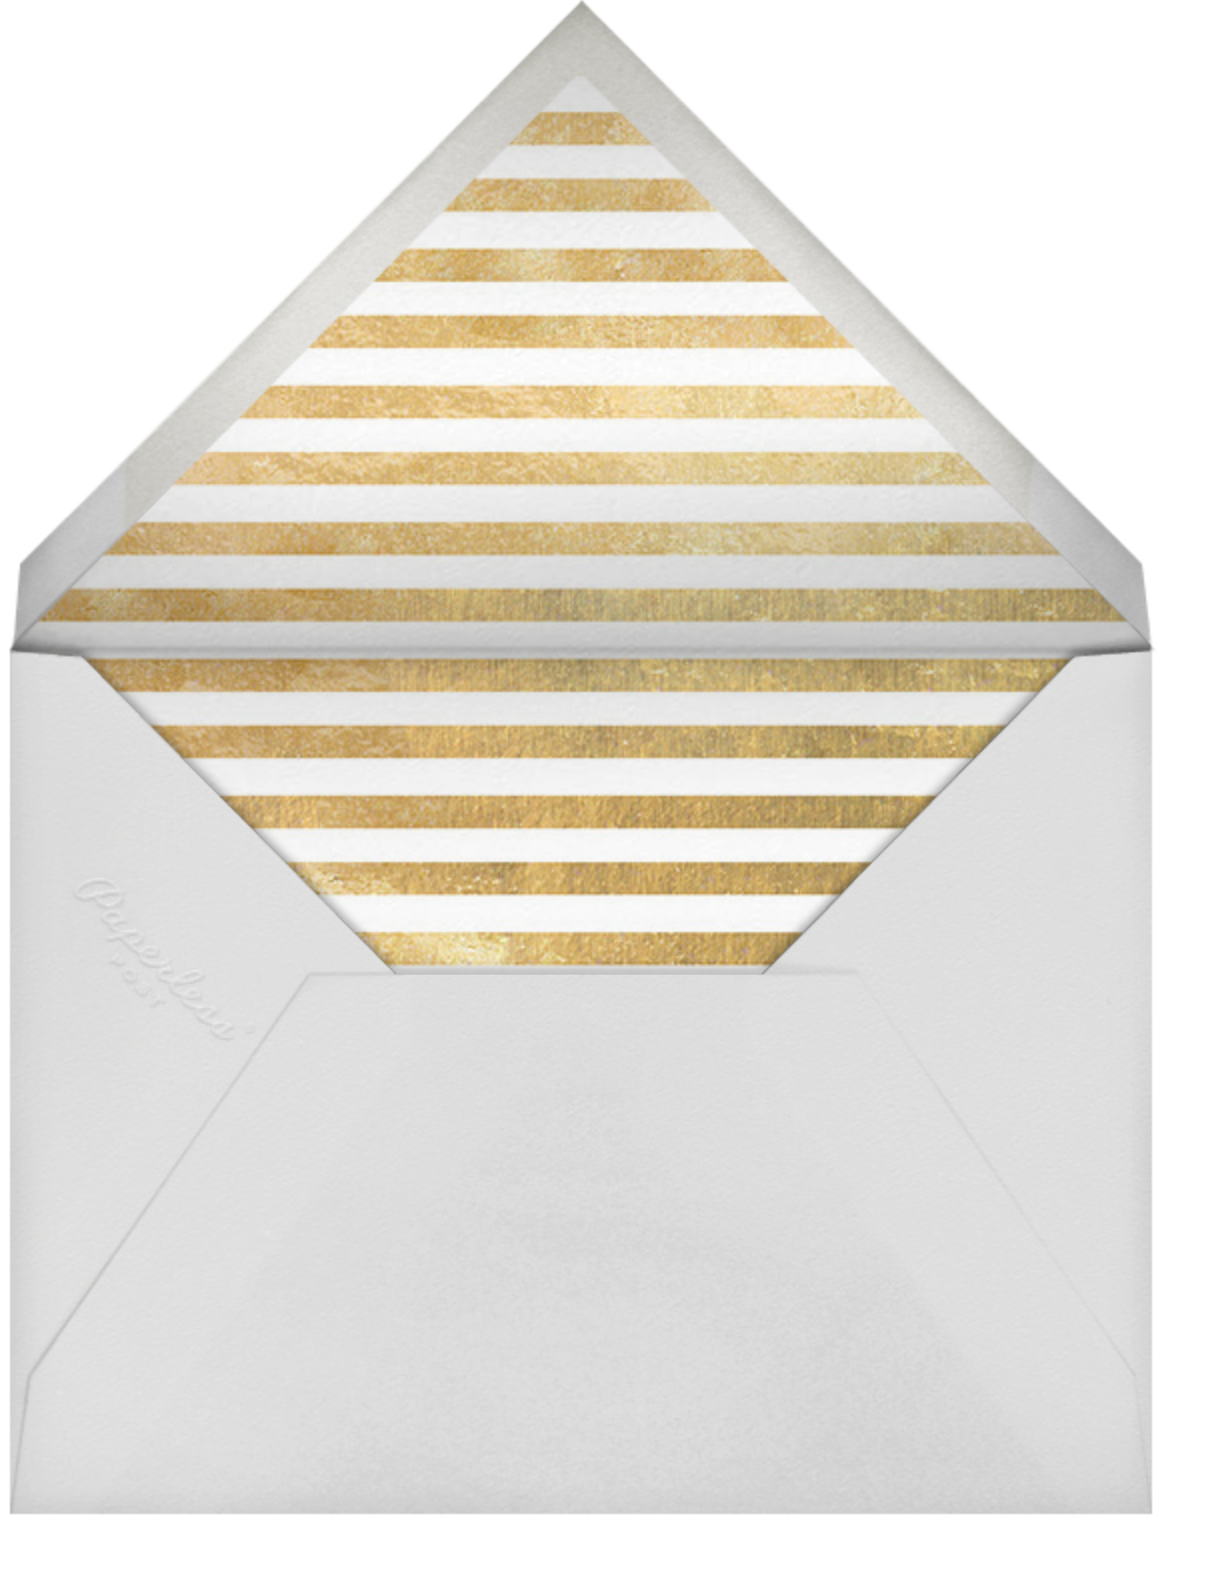 Confetti (Save the Date) - White/Gold - kate spade new york - Party save the dates - envelope back